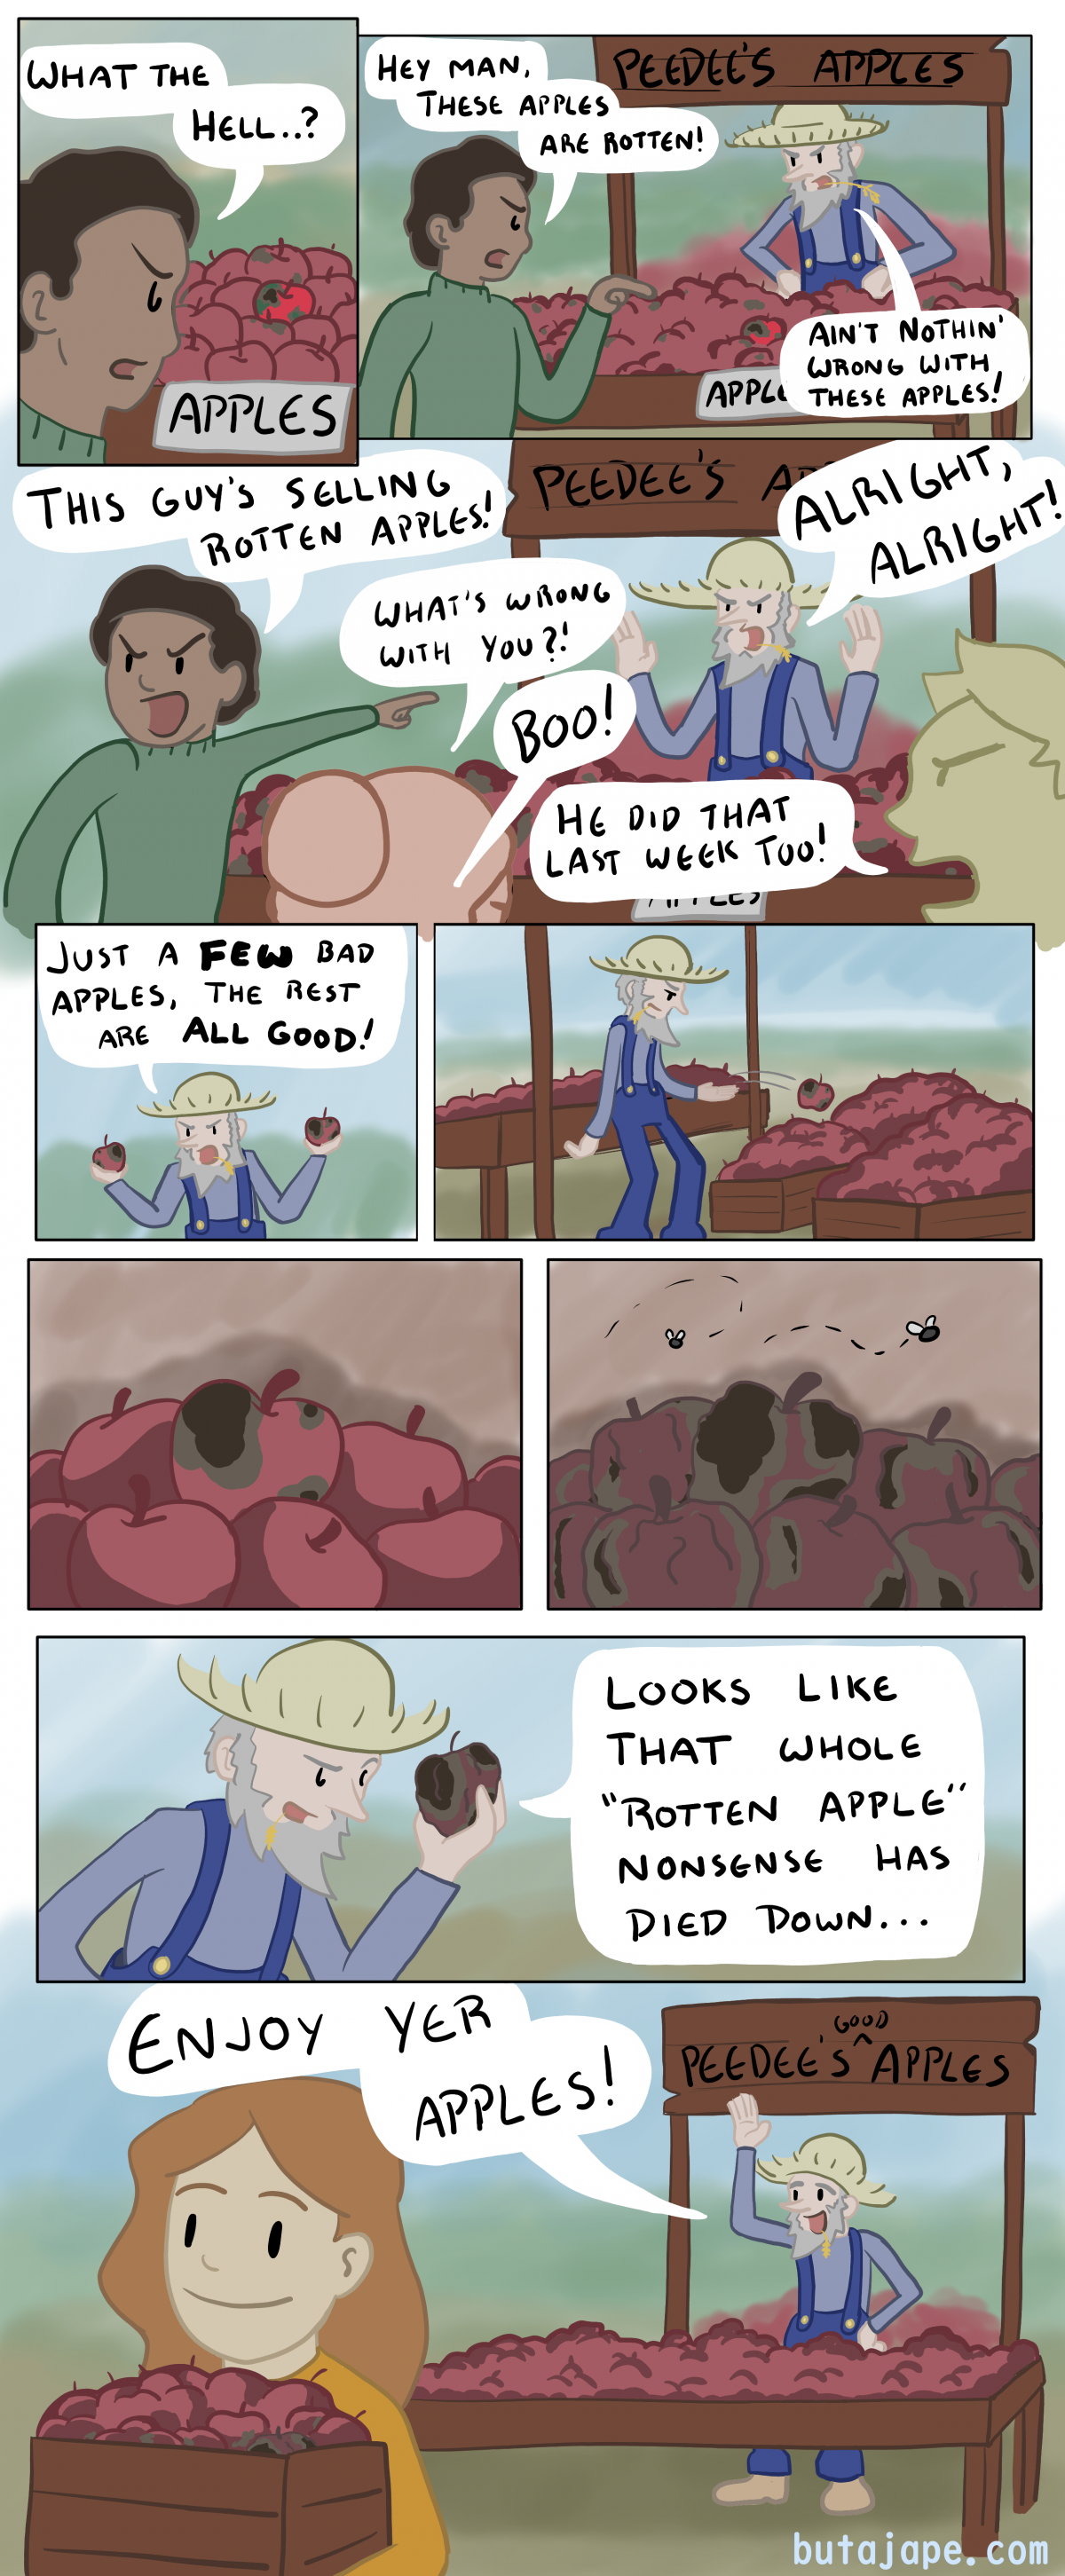 peedee's apples comic